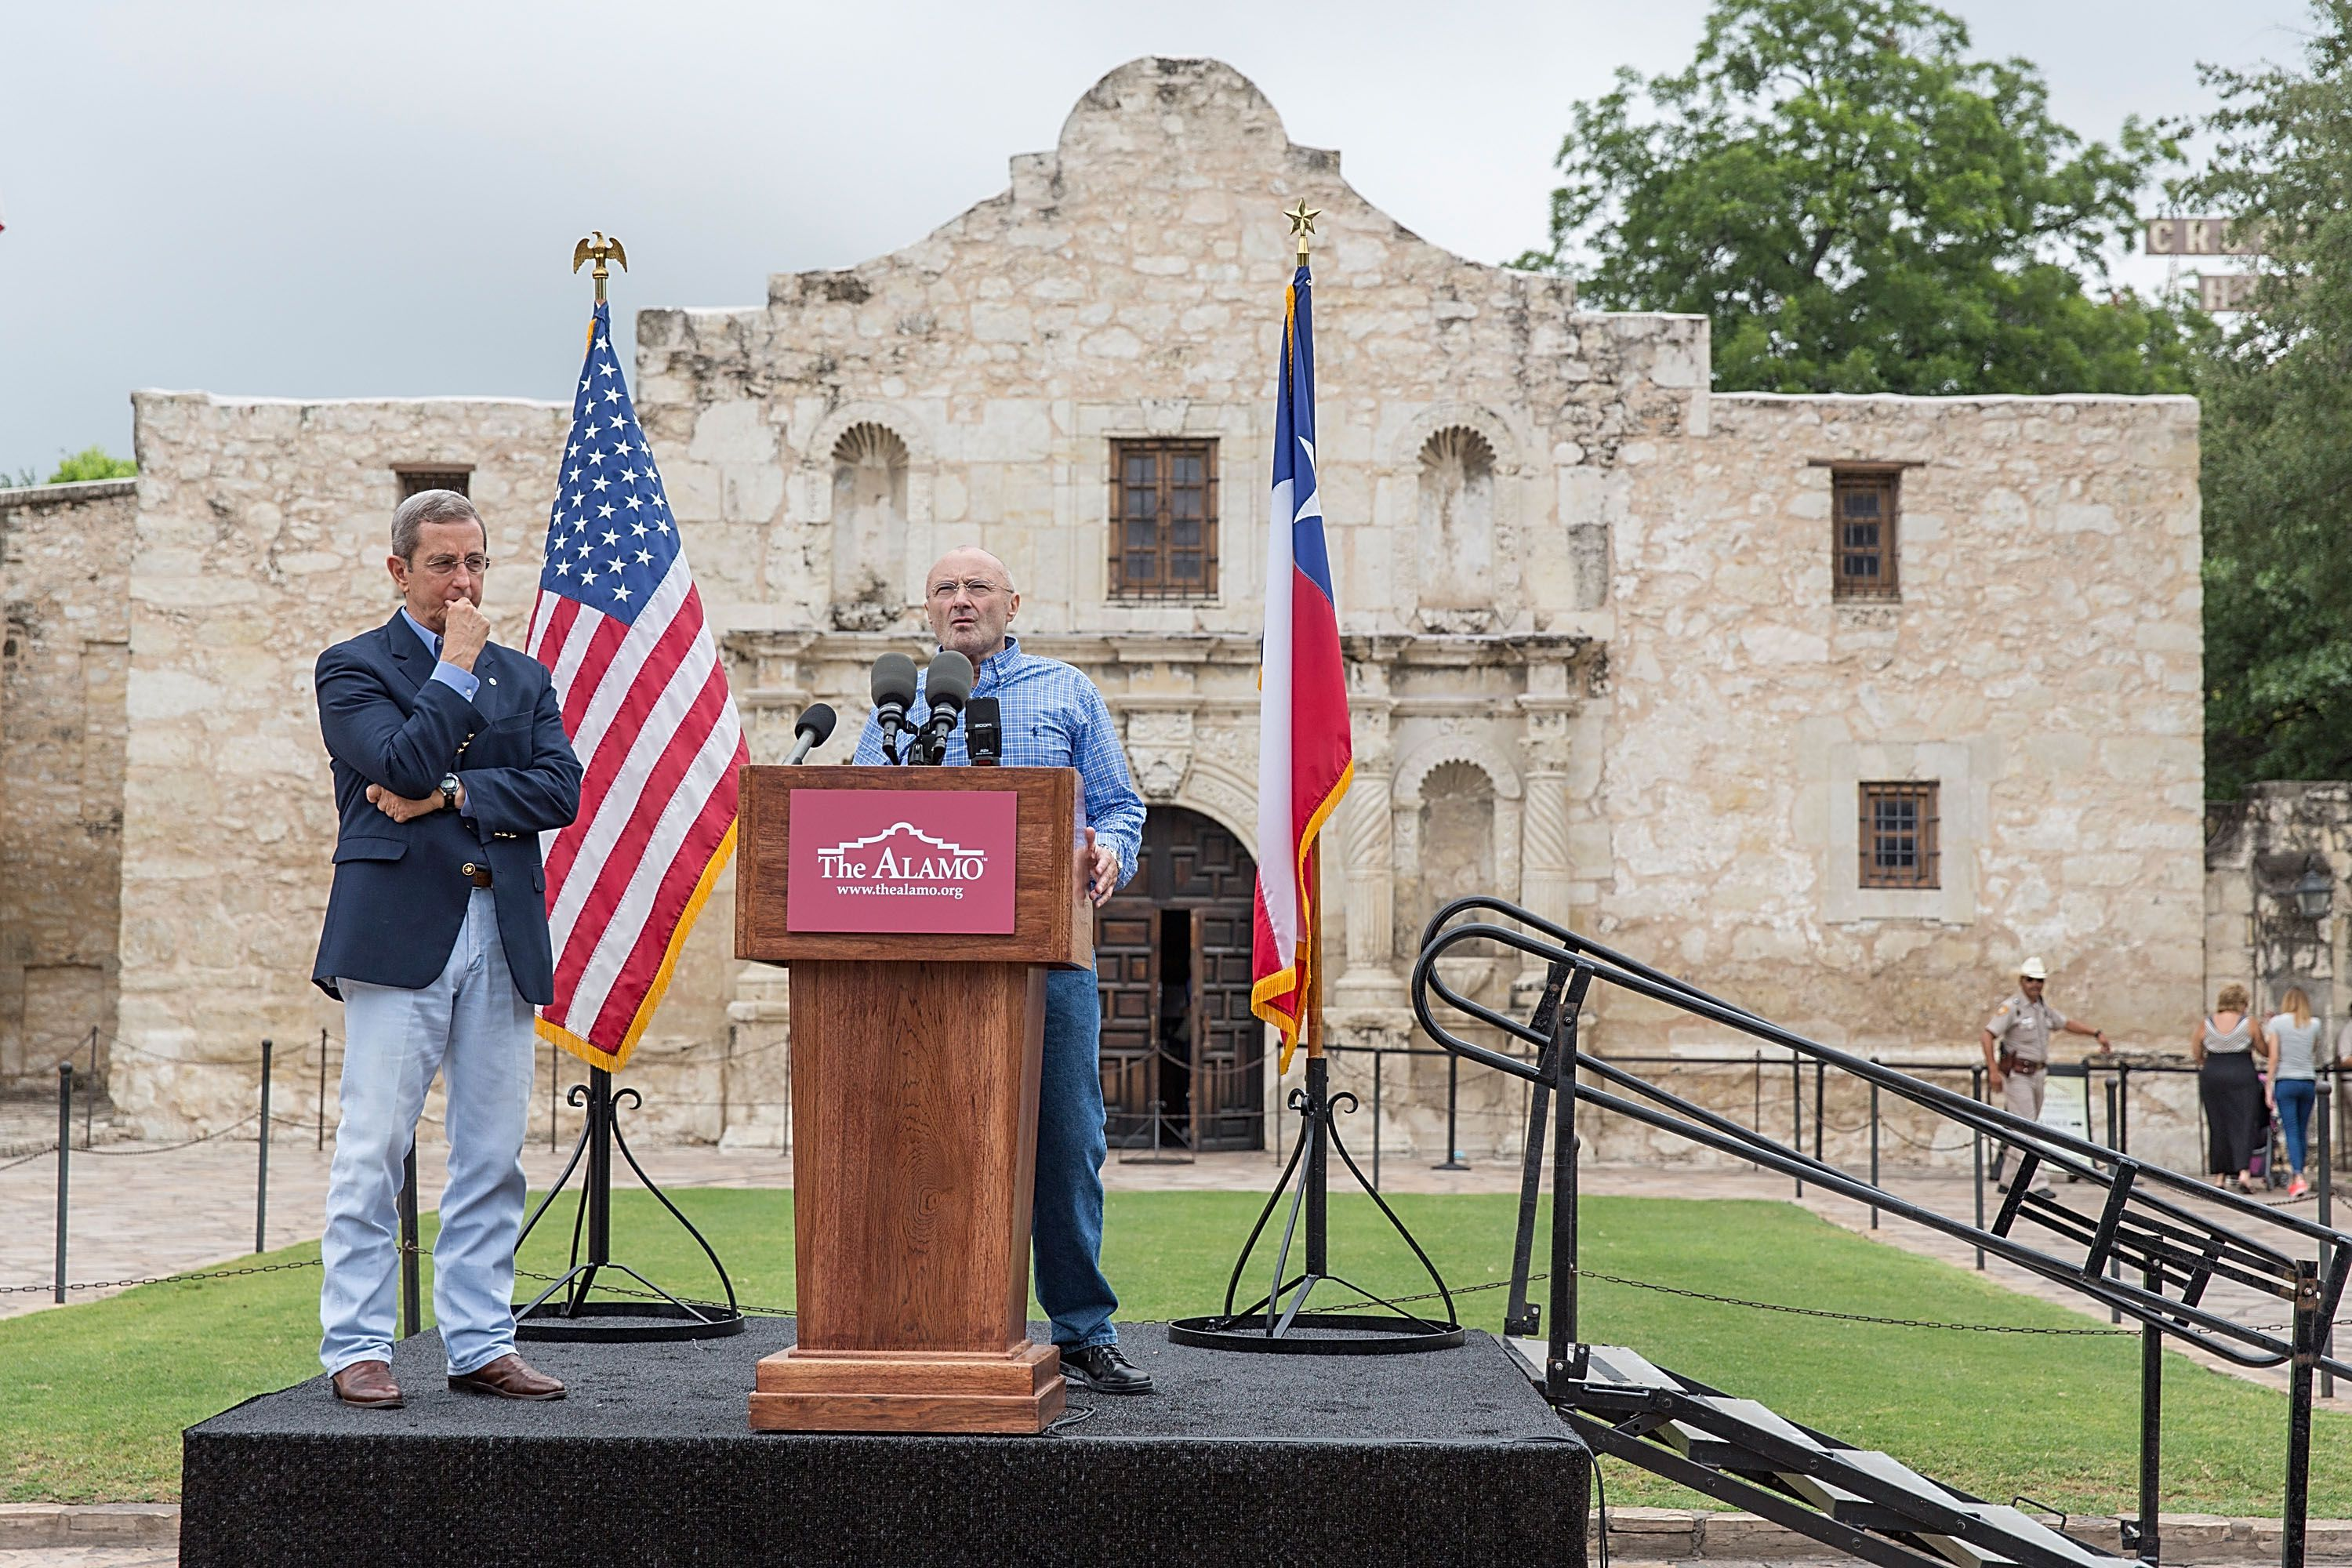 17 Things You Never Knew About the Alamo